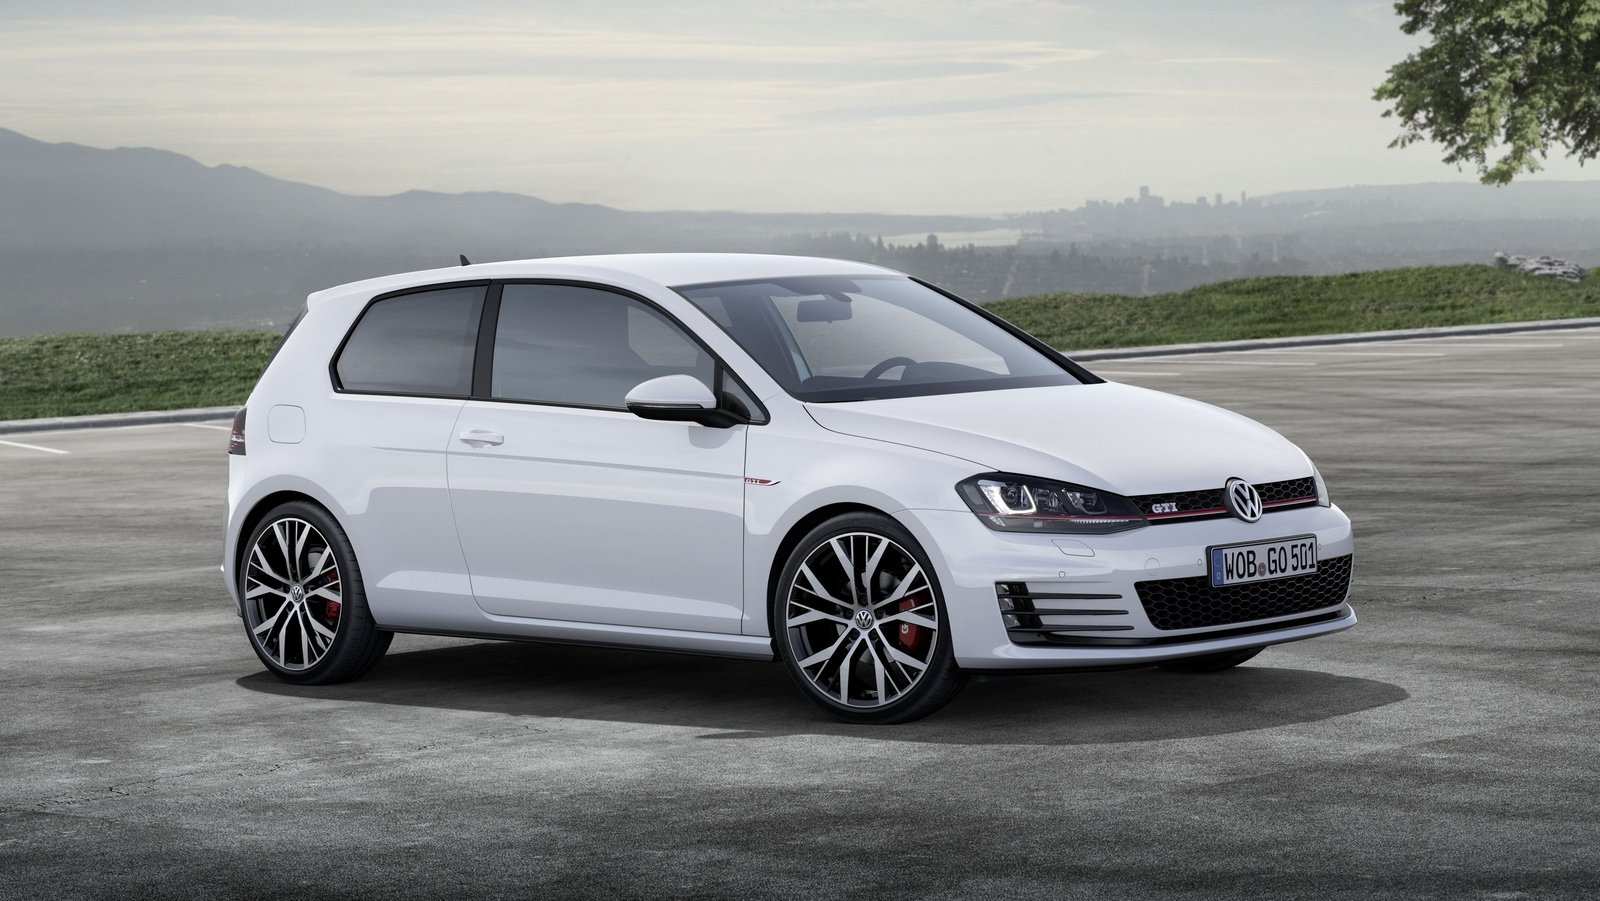 2018 Volkswagen Golf IV photo - 3